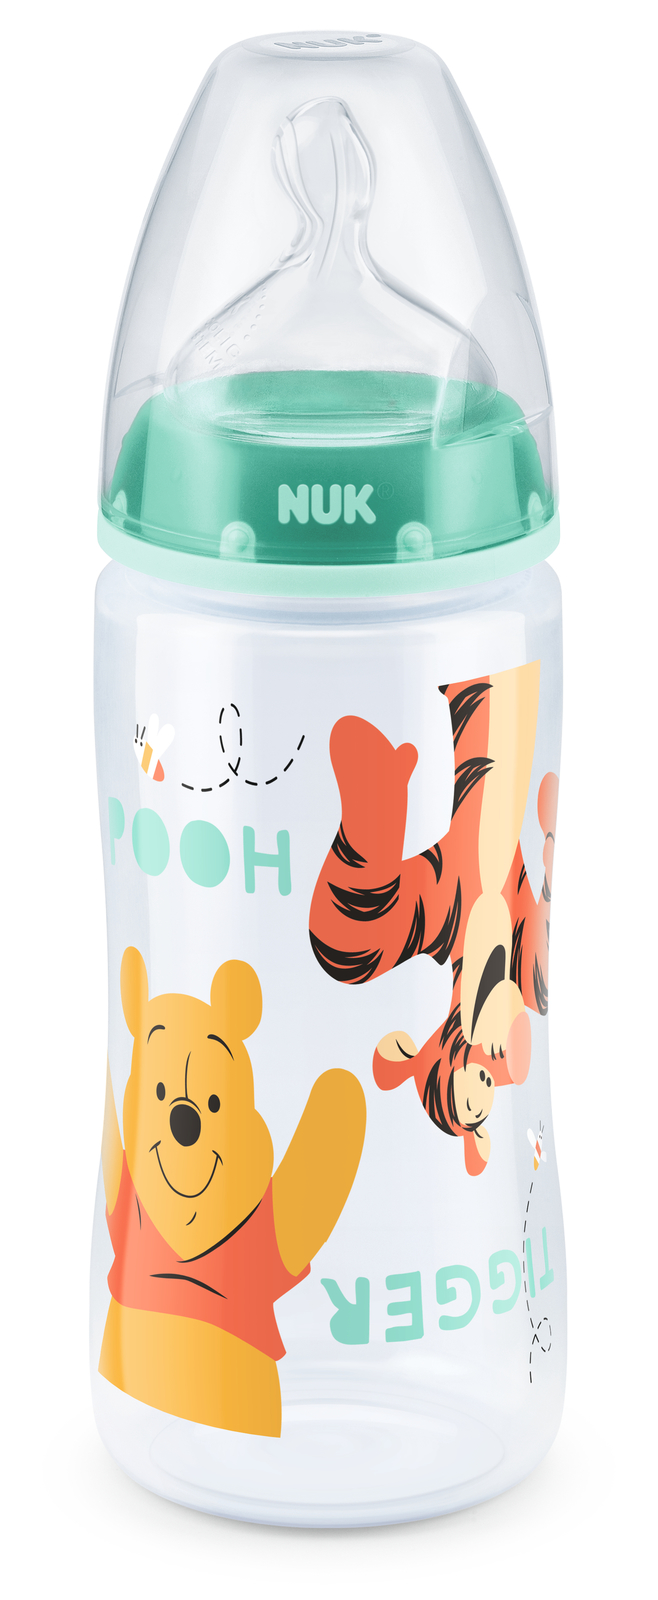 NUK: First Choice PP Bottle 300ml Silicone Teat - Winnie The Pooh (Assorted Designs) image